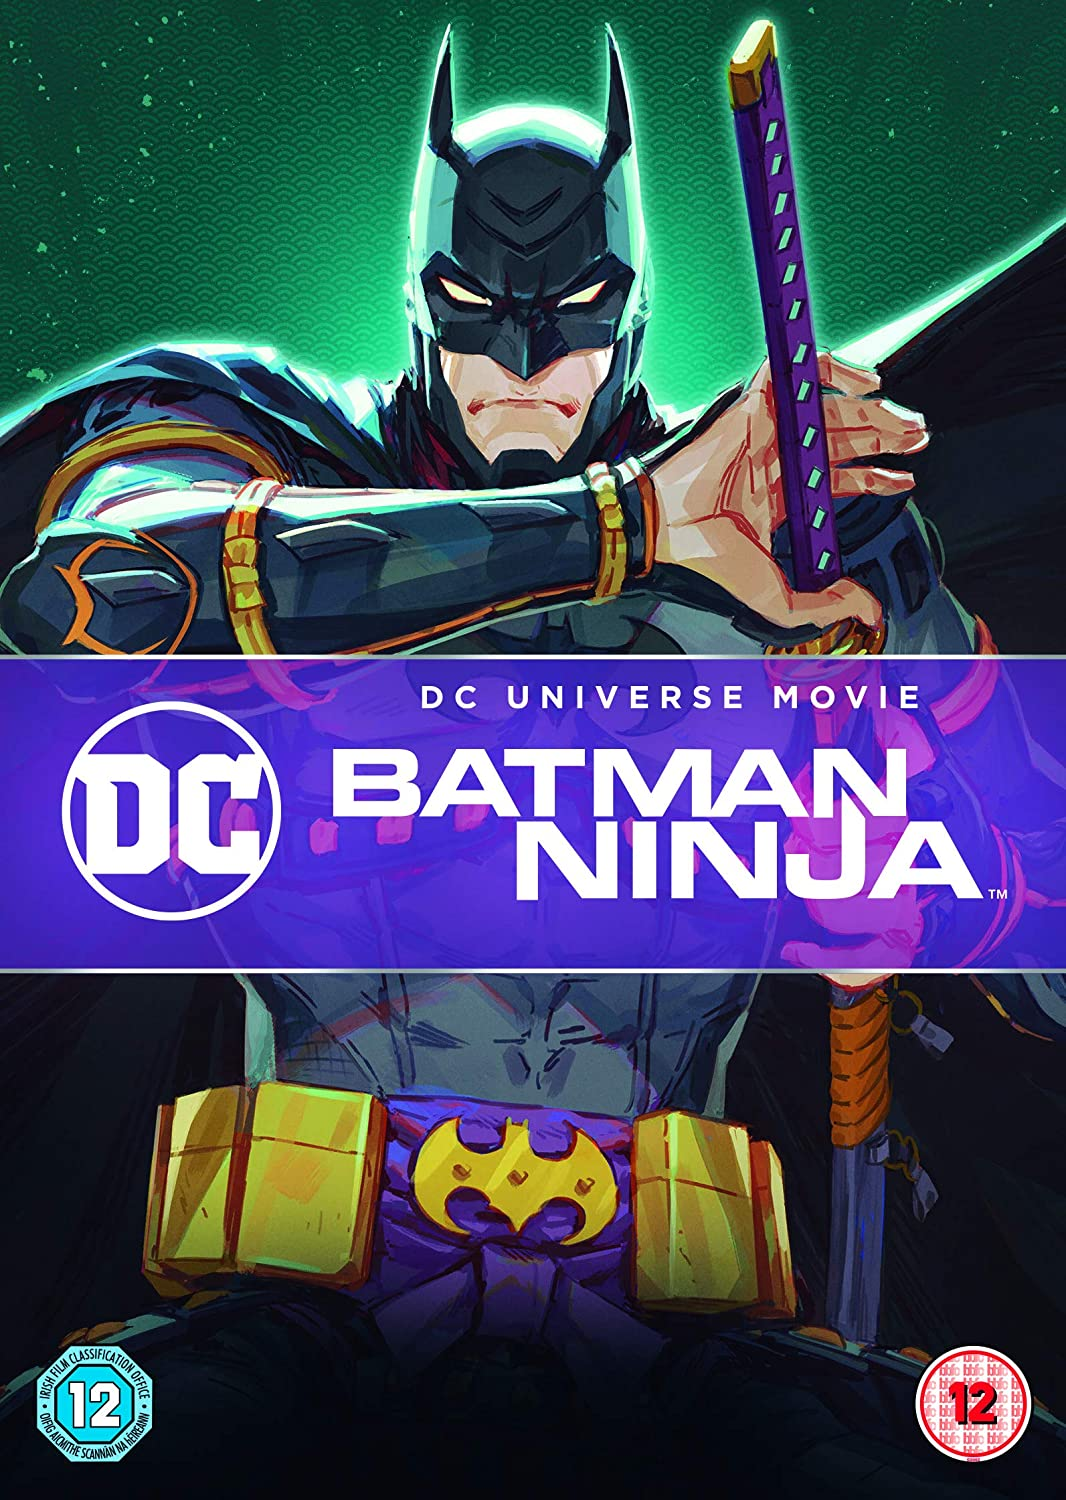 Amazon.com: Batman Ninja [DVD] [2018]: Movies & TV